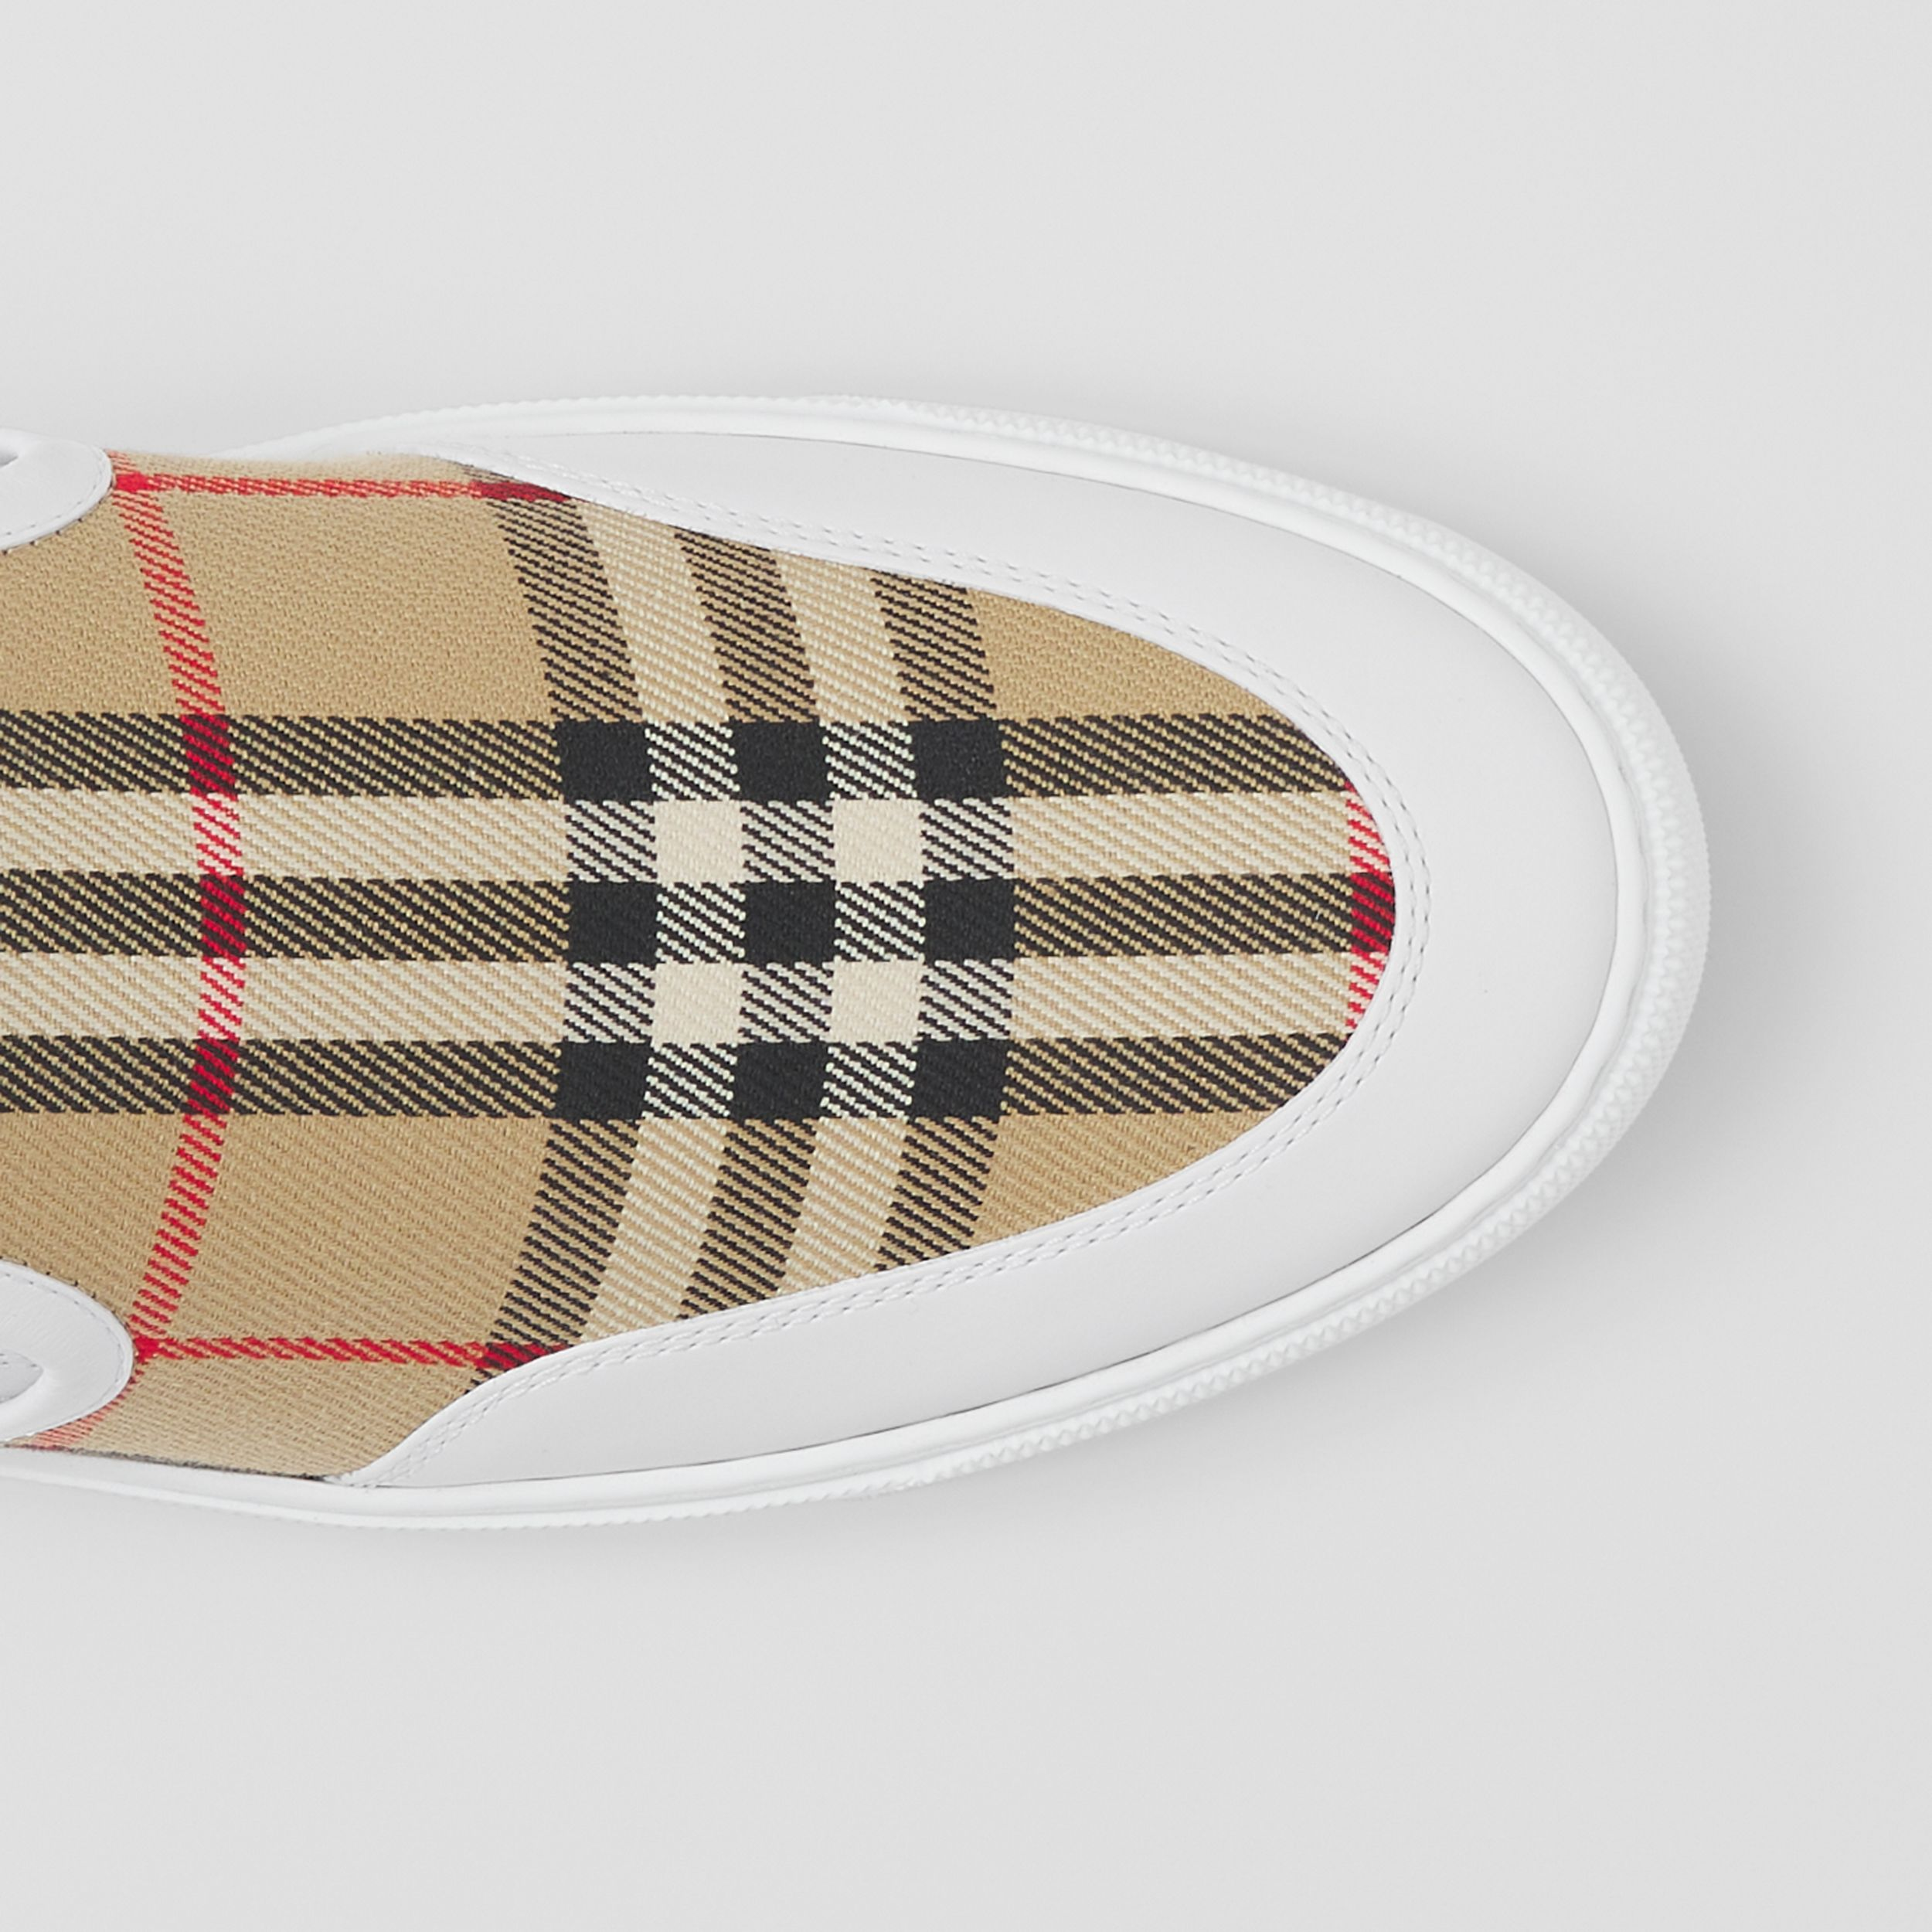 Leather and Vintage Check Slip-on Sneakers in White/archive Beige - Women | Burberry - 2